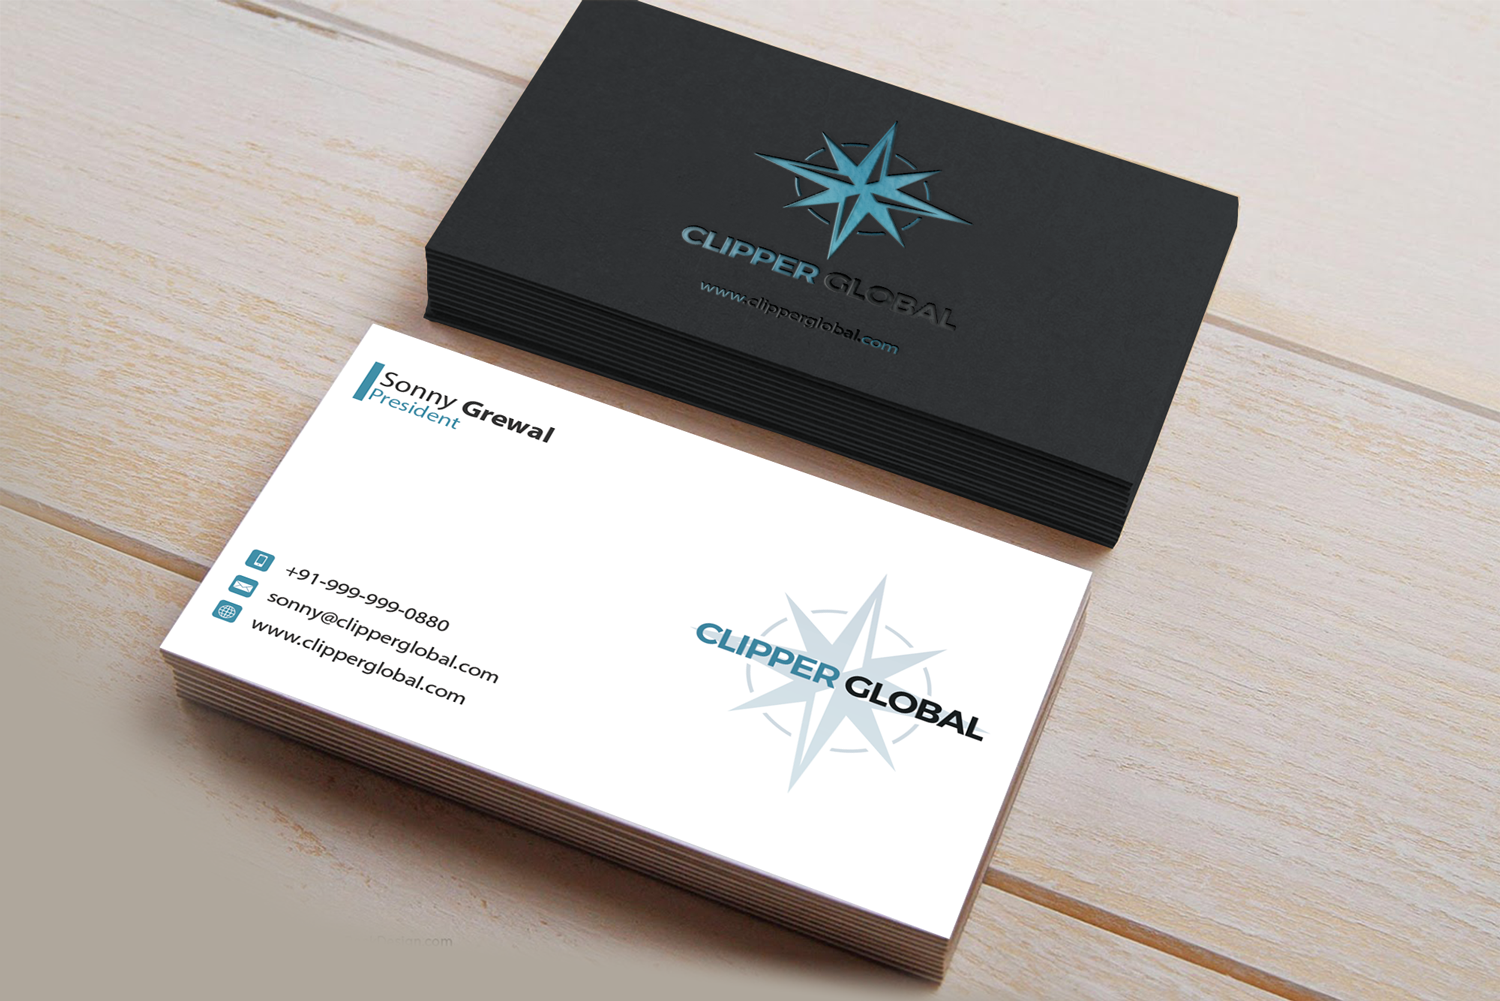 Masculine elegant importer business card design for clipper global business card design by riz for clipper global design 13242583 colourmoves